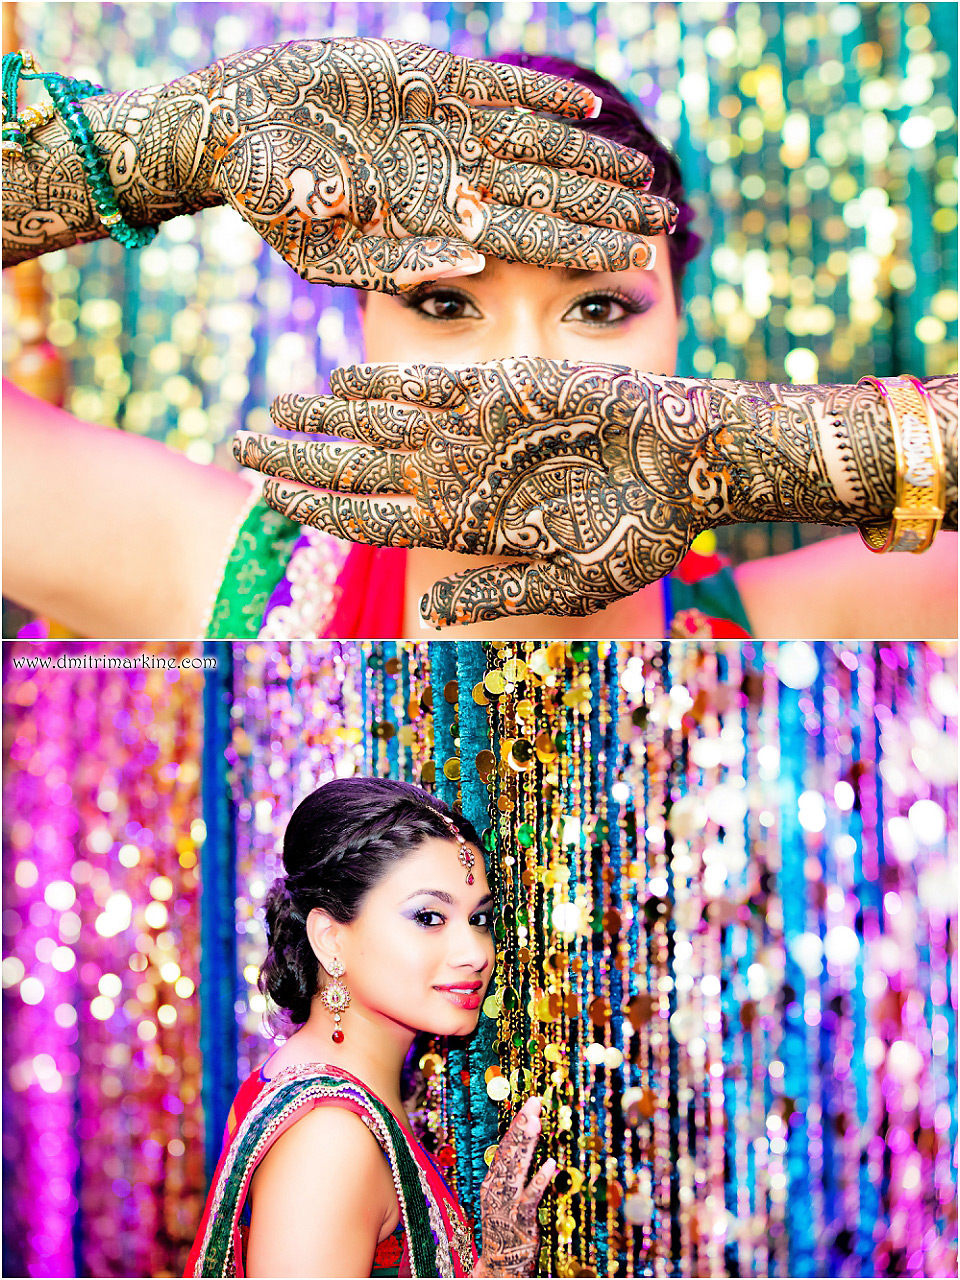 Best Ismaili wedding photographers